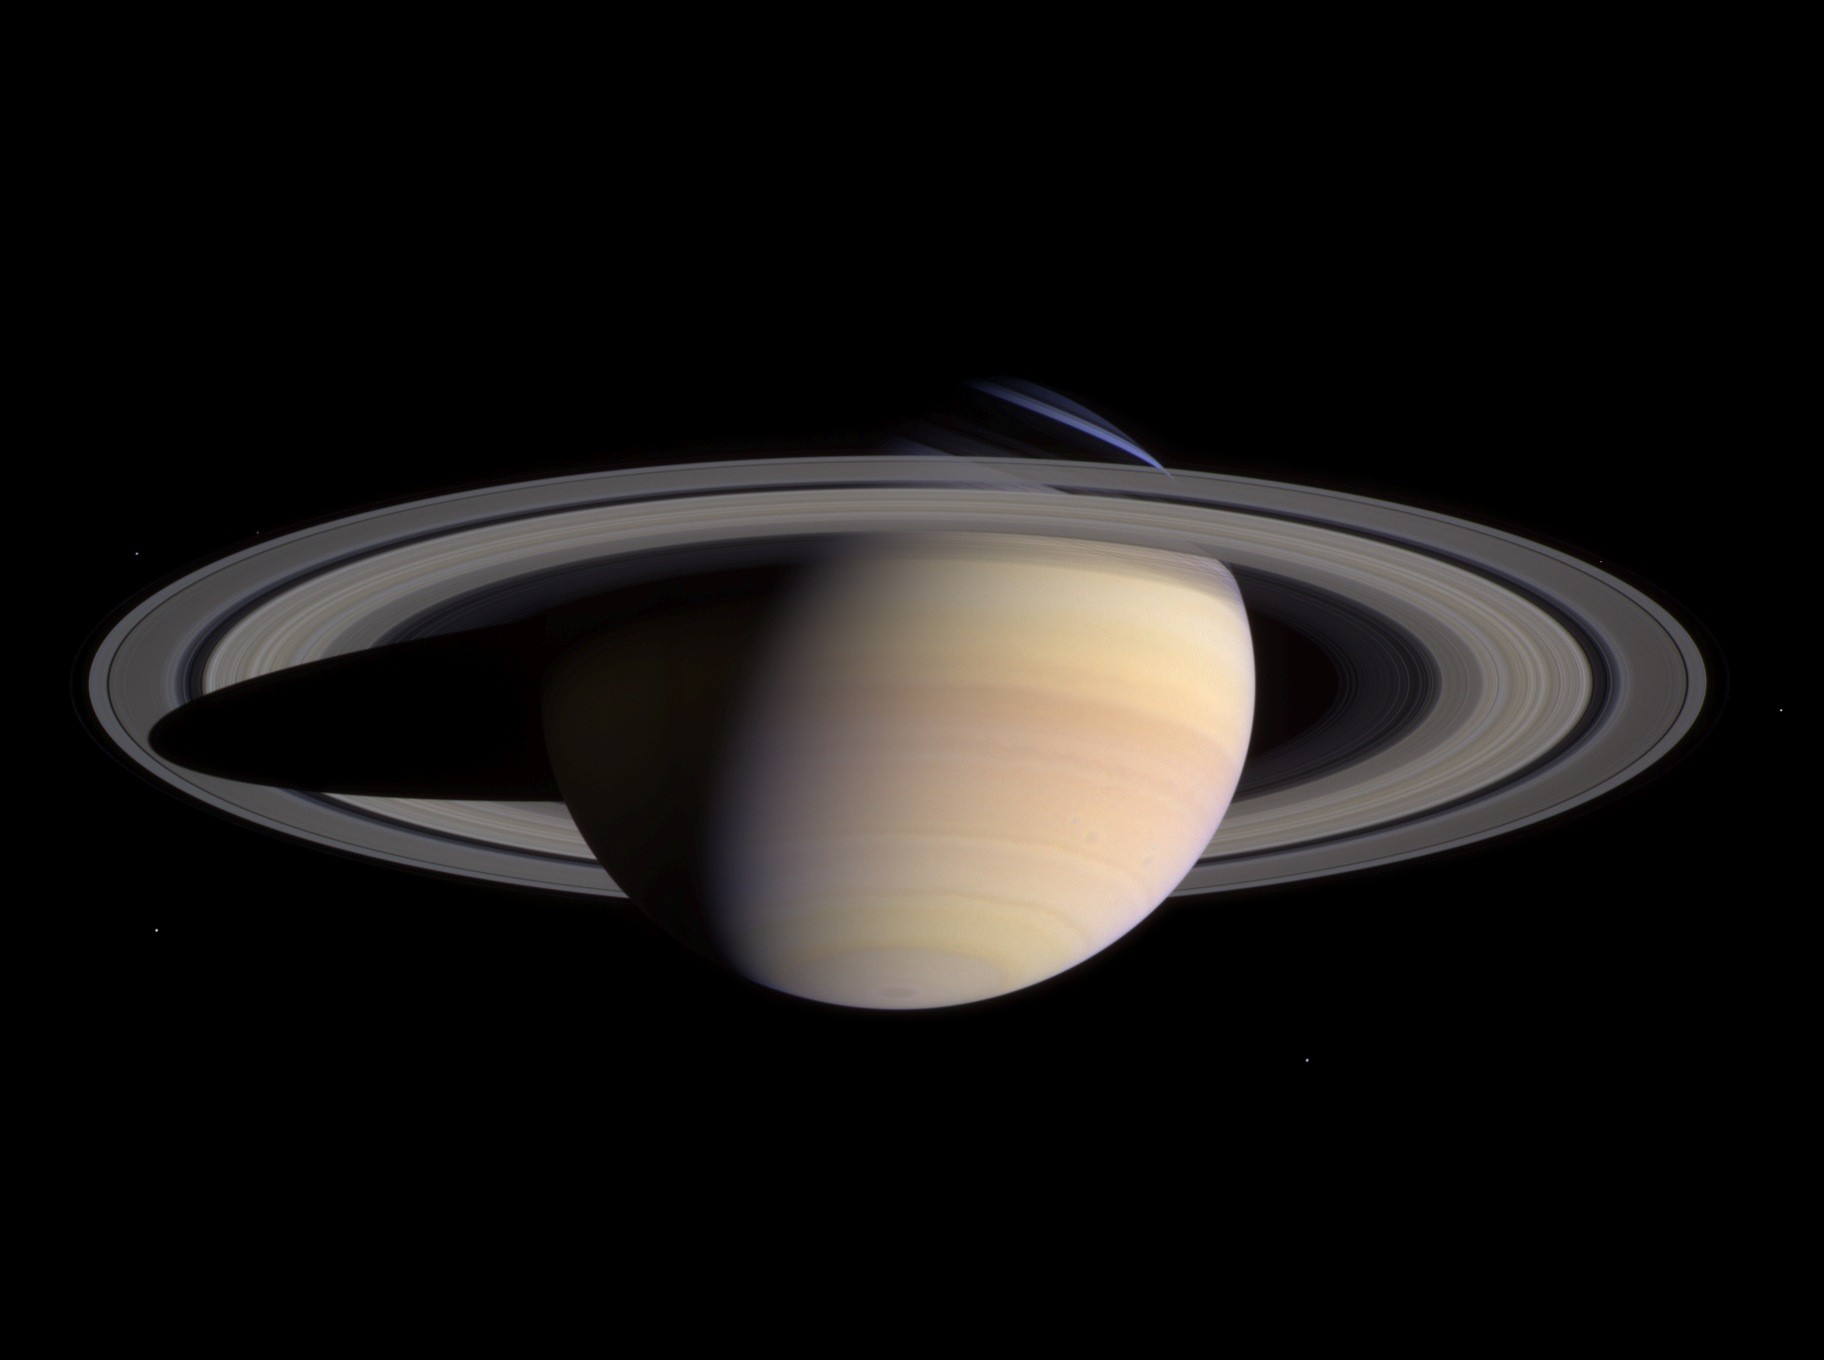 https://upload.wikimedia.org/wikipedia/commons/2/25/Saturn_PIA06077.jpg